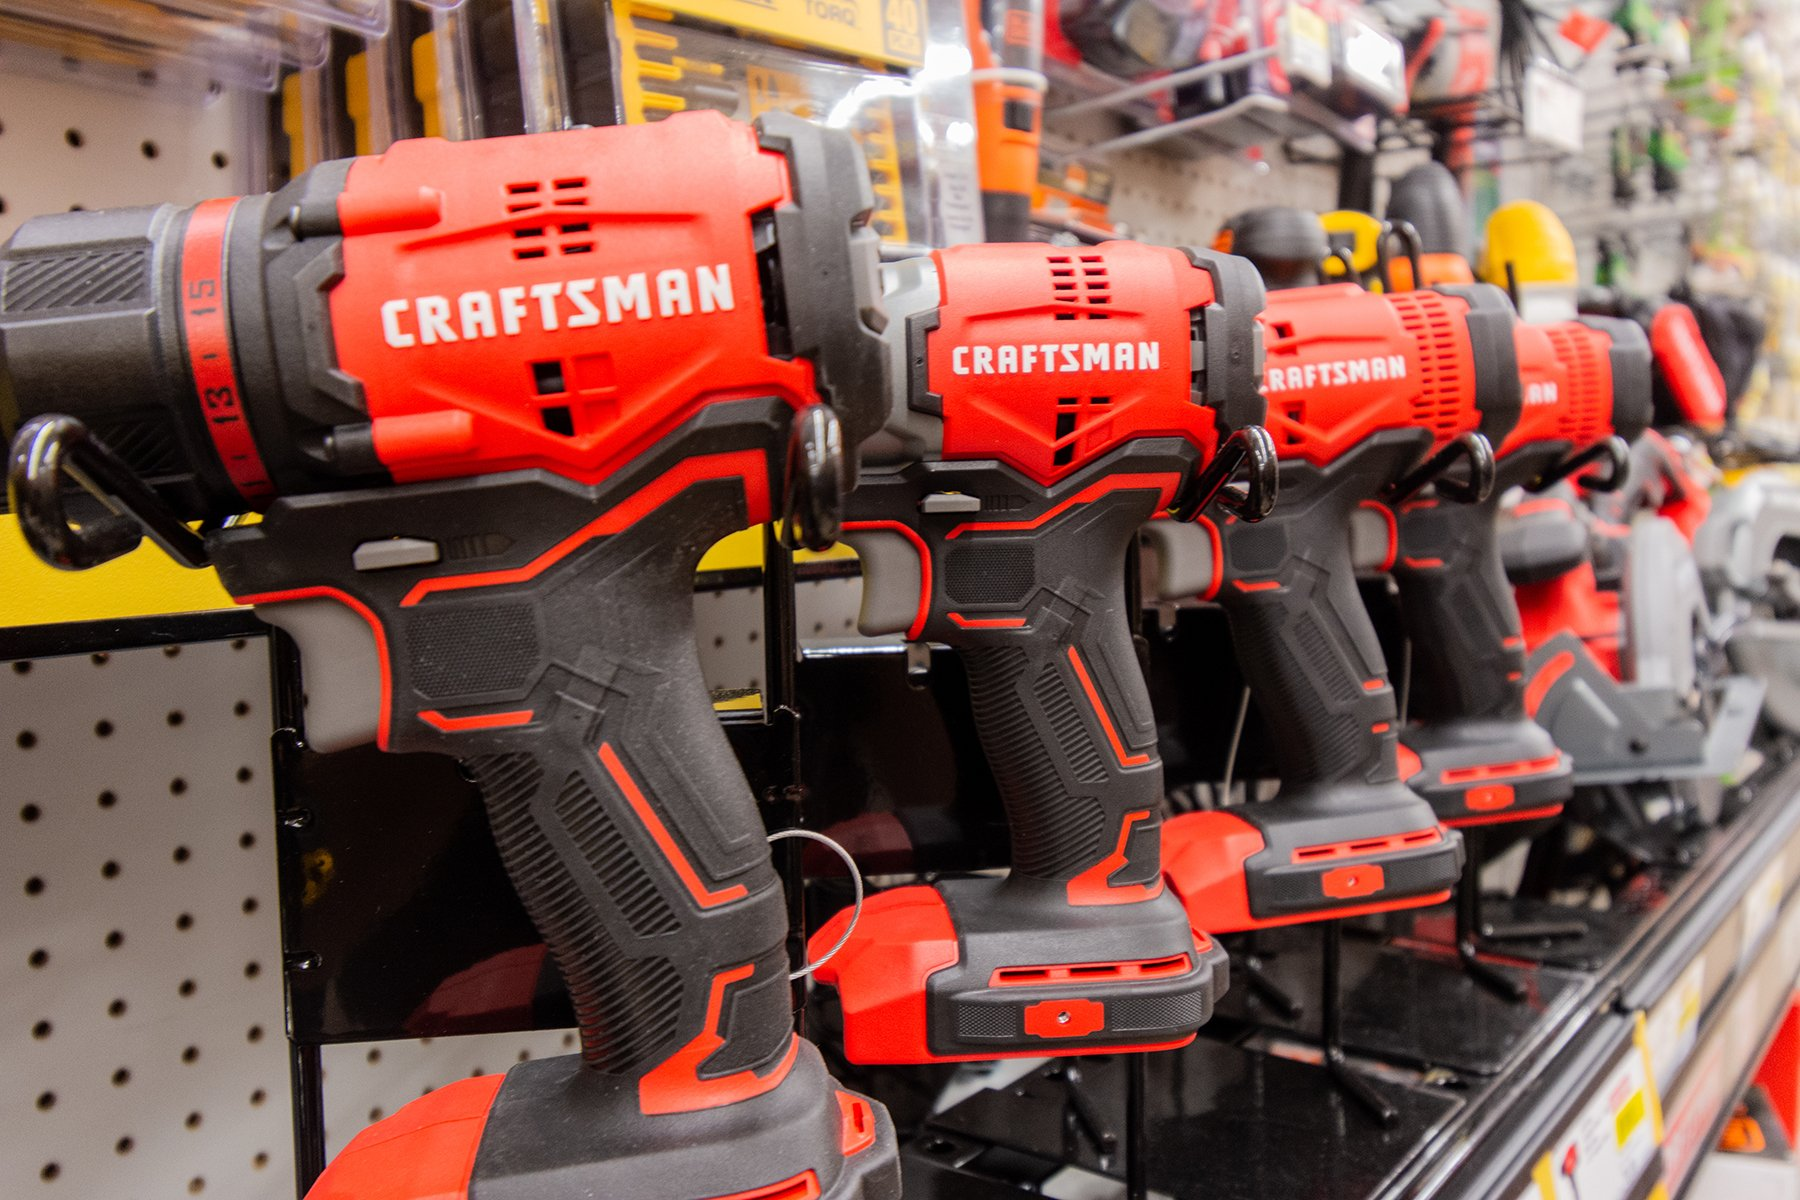 craftsman battery-powered drills